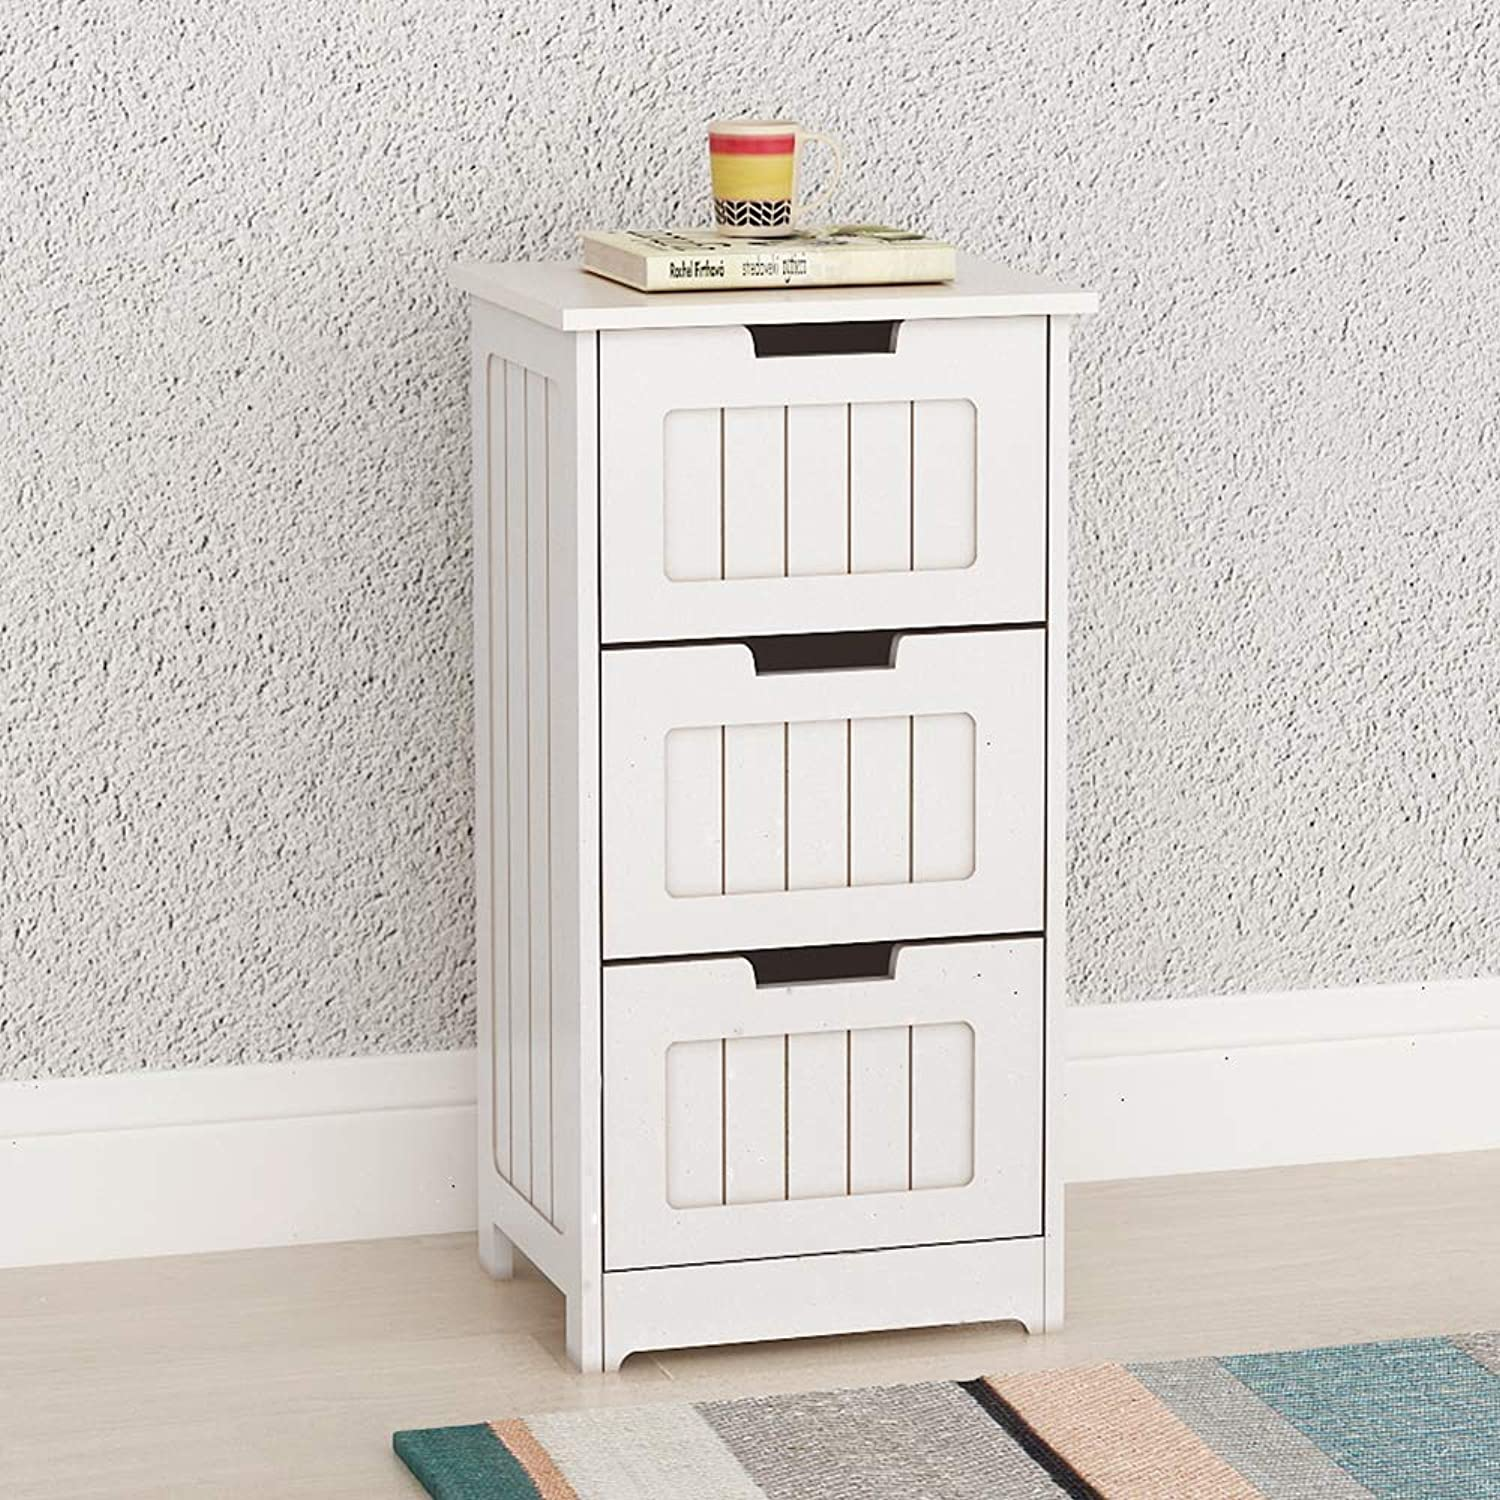 DlandHome Bathroom Storage Cabinet, Wooden Free Standing Cabinet Side Organizer Office Cabinet with 3 Drawers, RF6027